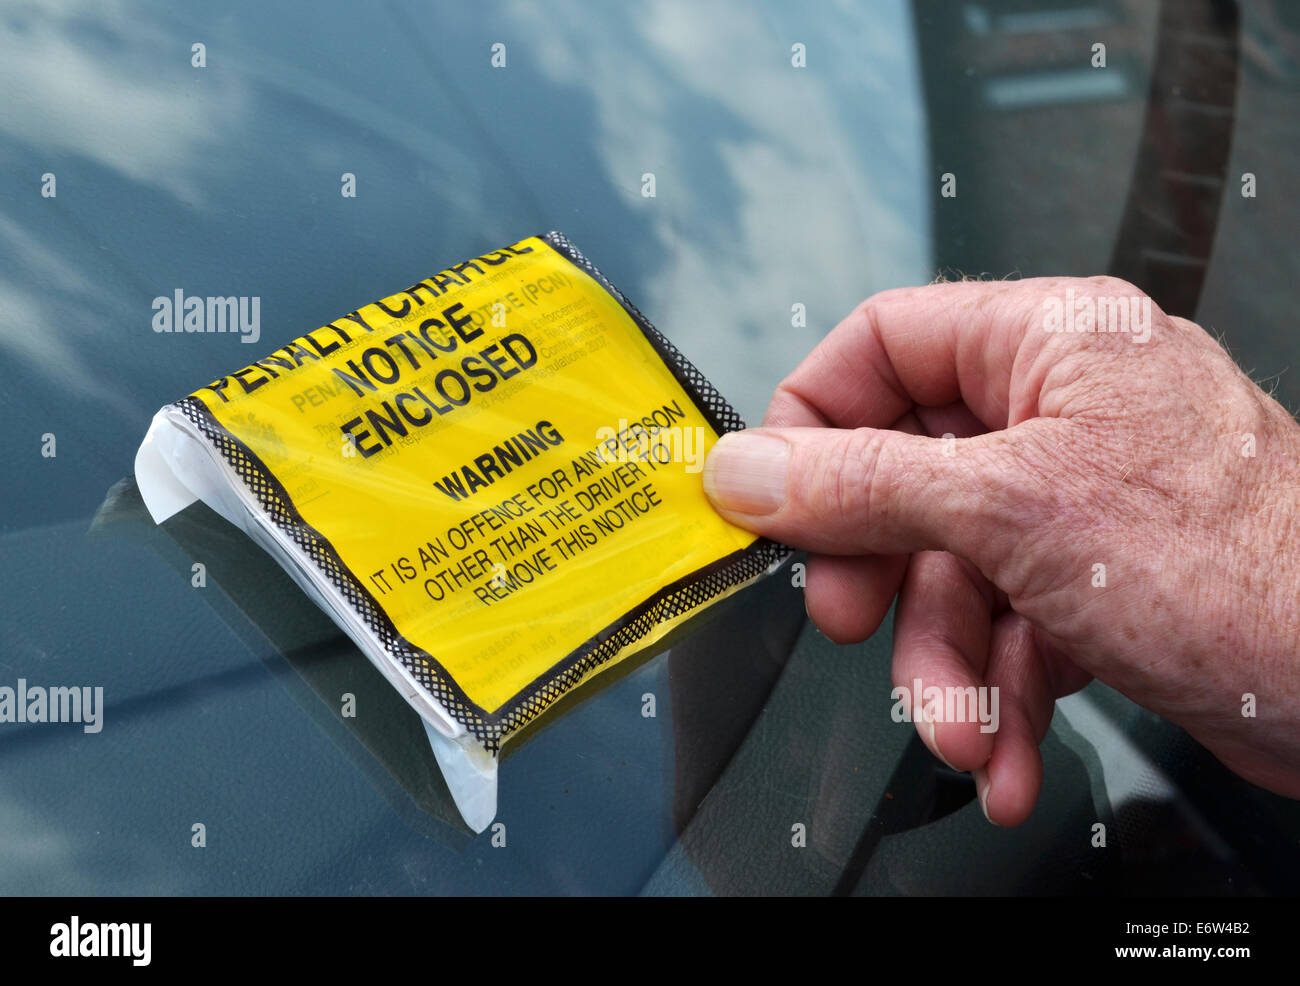 A motorist removing a fixed penalty charge ticket from his windscreen - Stock Image